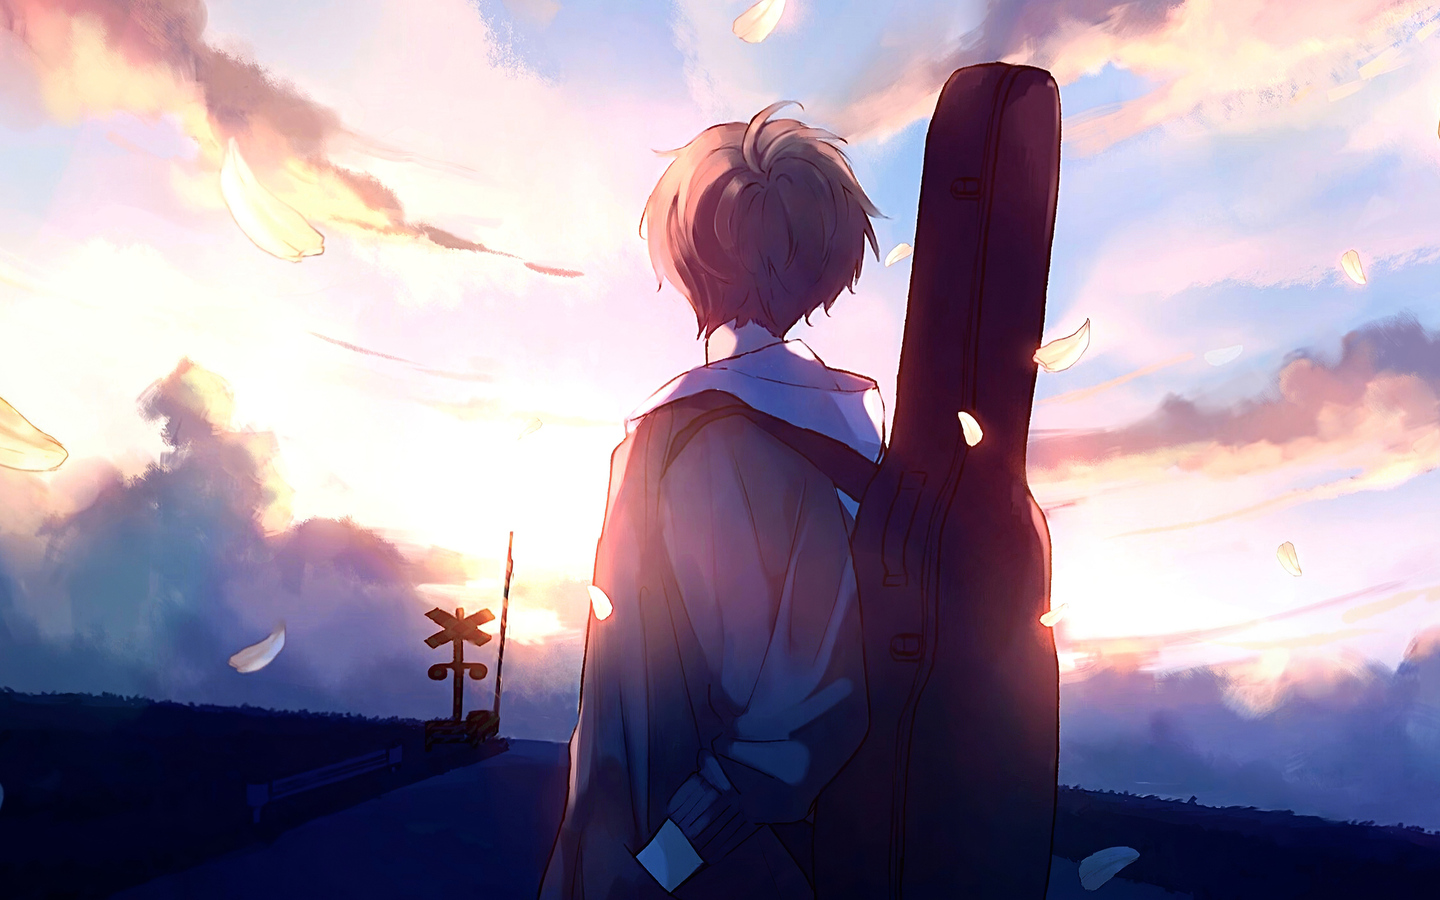 1440x900 Anime Boy Guitar Painting 1440x900 Resolution HD 4k Wallpapers, Images, Backgrounds ...